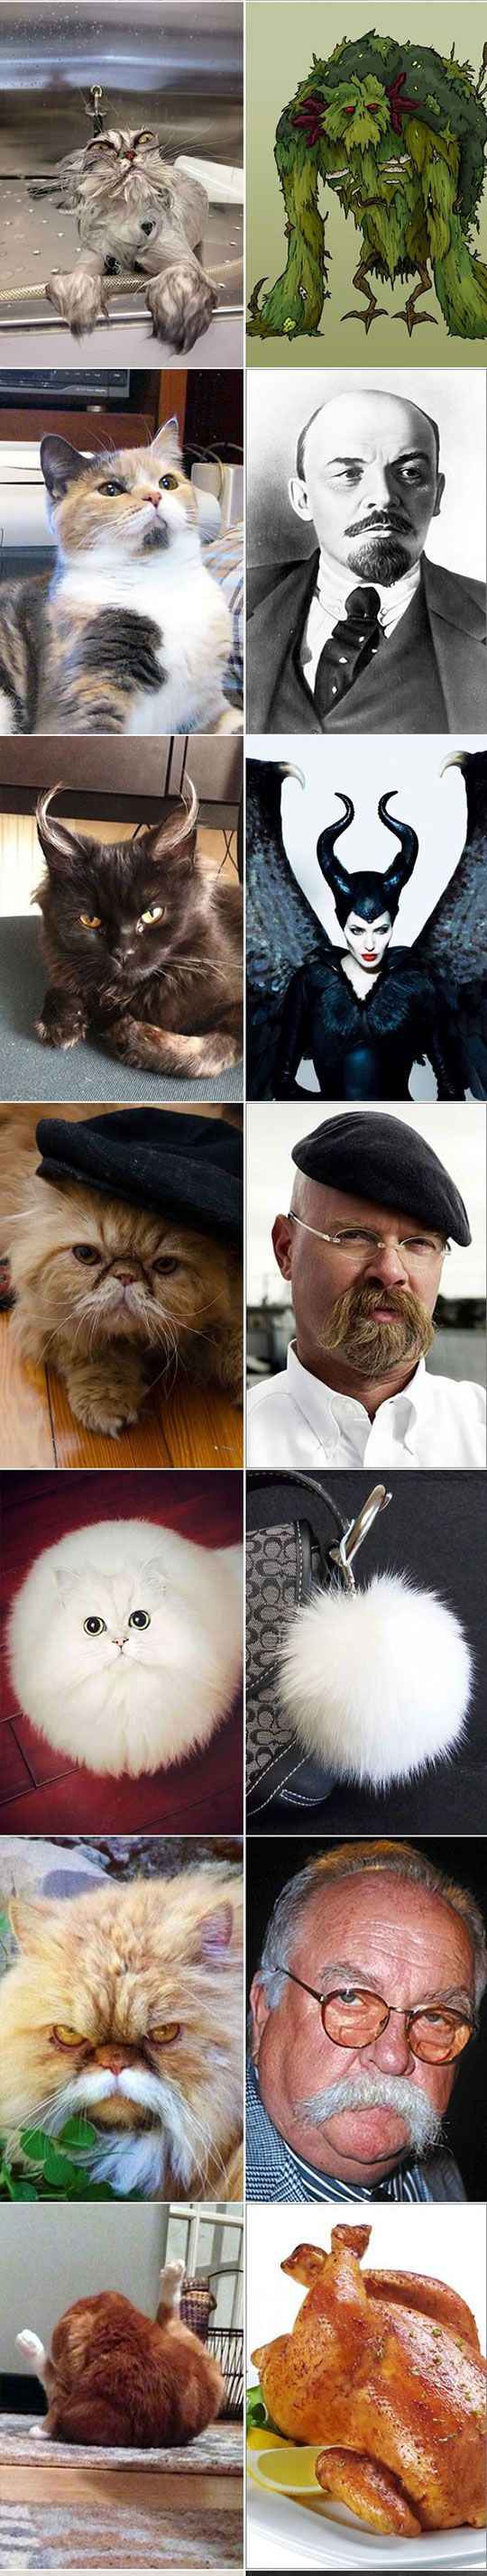 18 Cats That Look Like Something Else - Part 1